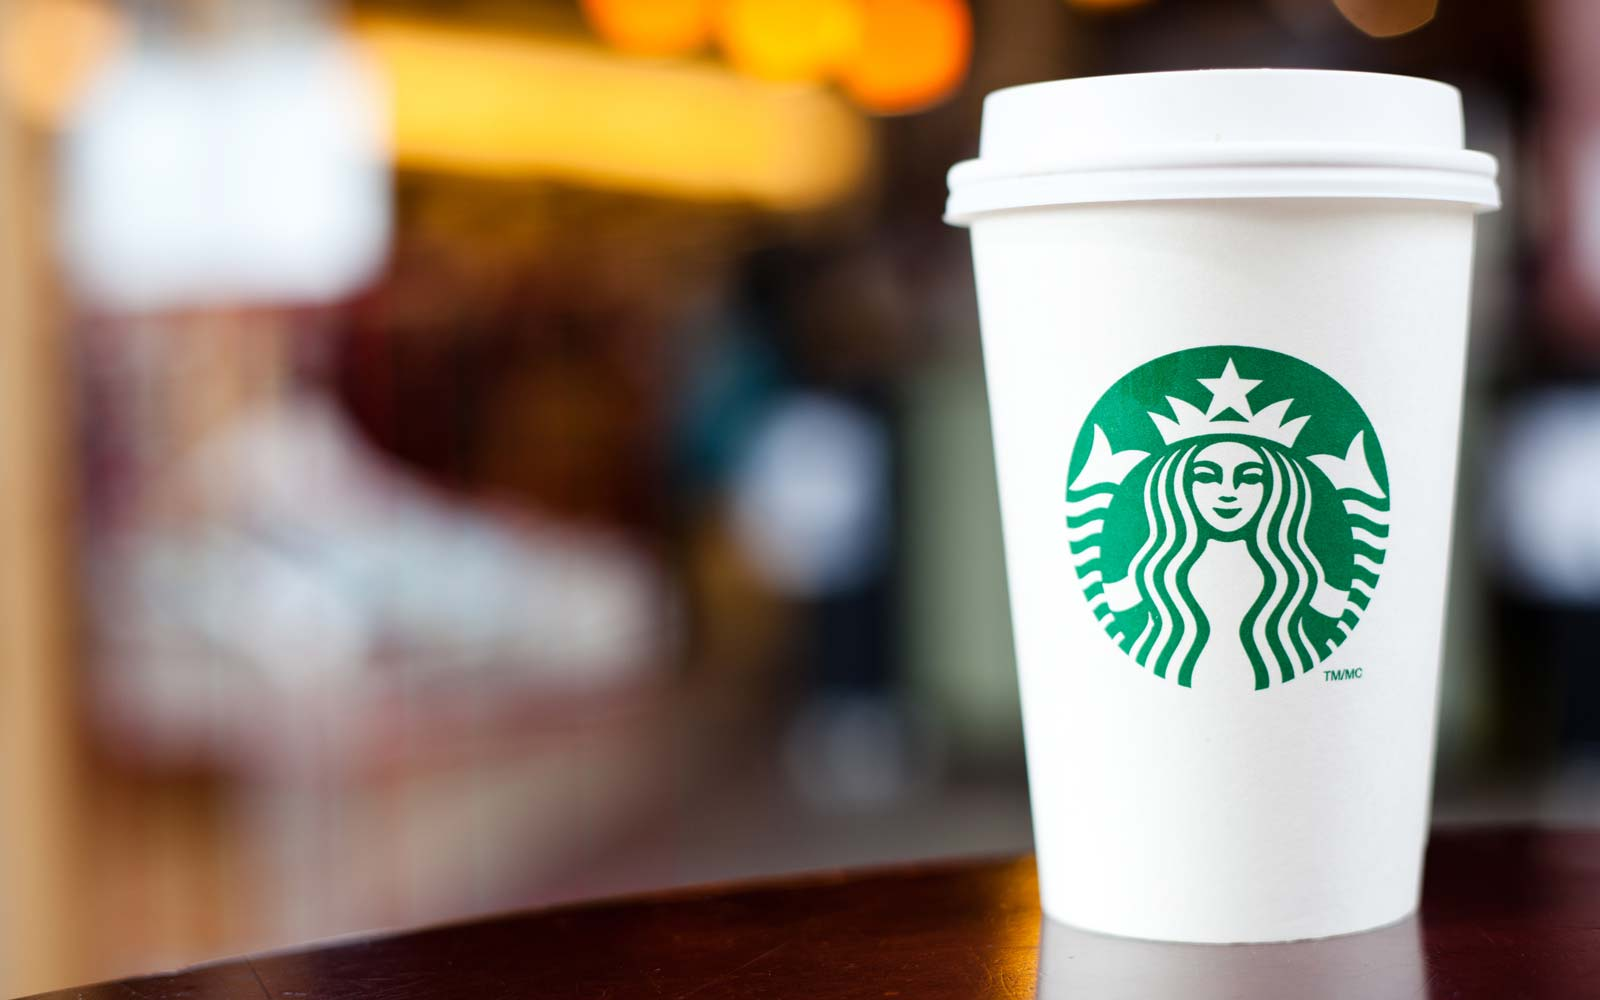 Grande Starbucks to go cup on table